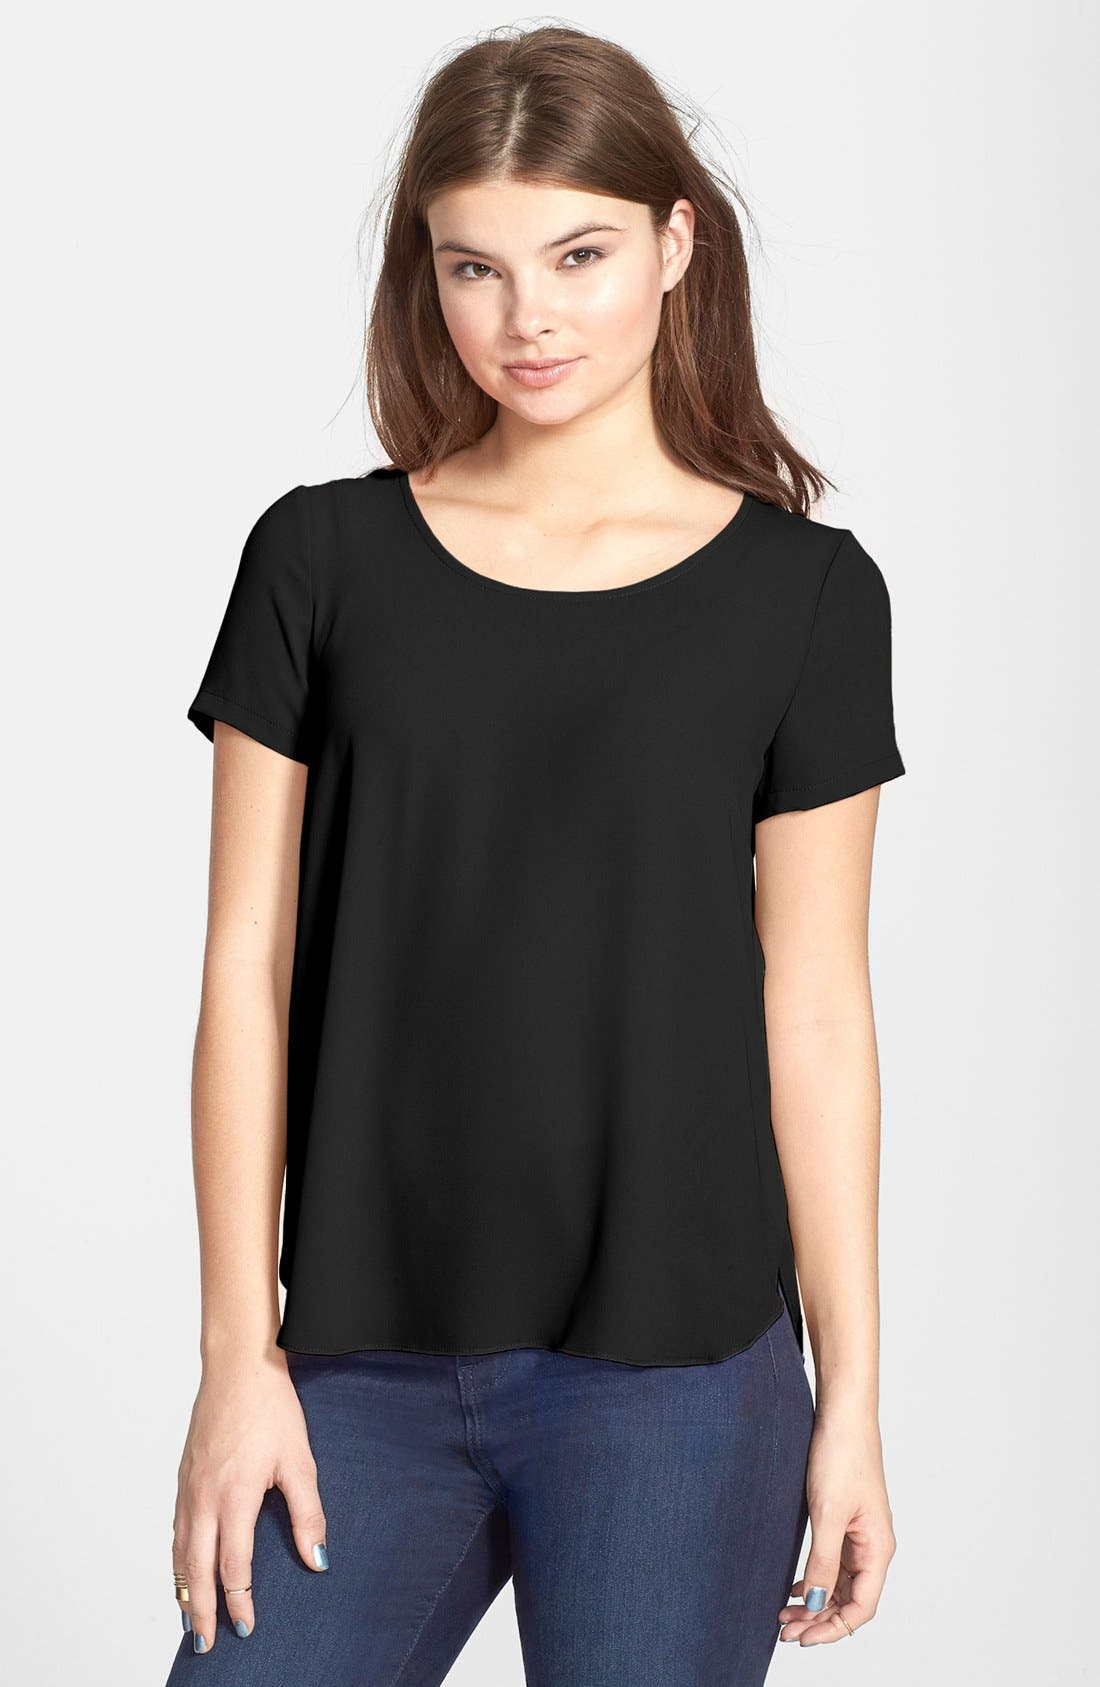 Alternate Image 1 Selected - Lush 'Lily' Side Slit Woven Tee (Juniors)